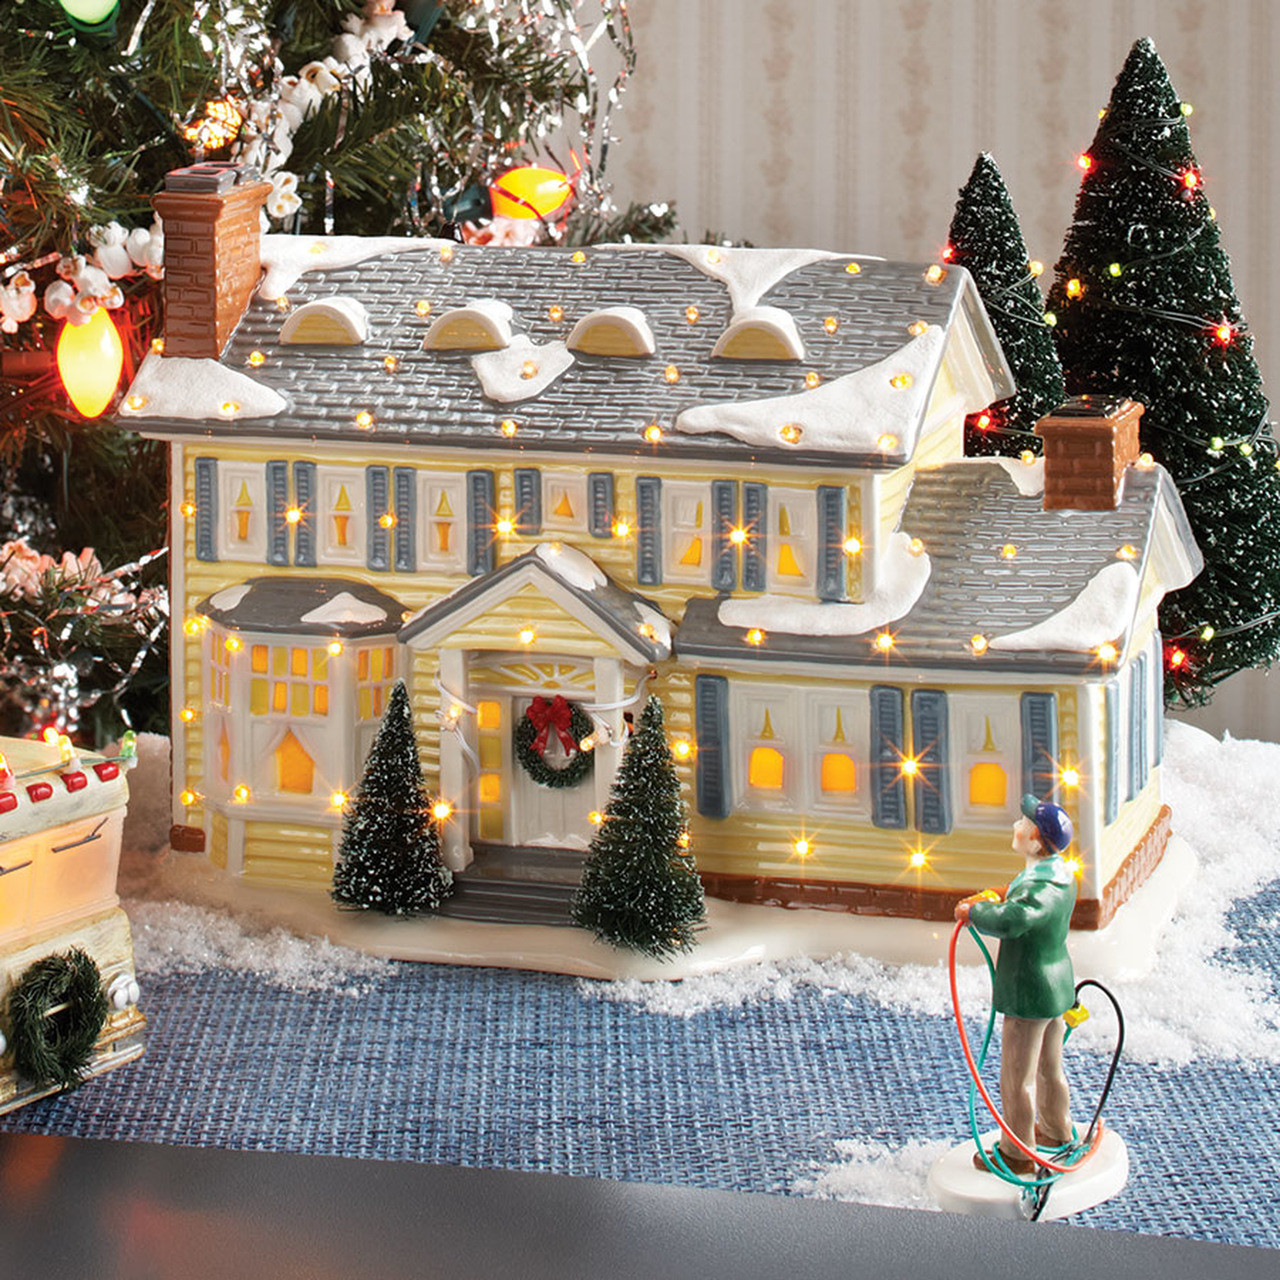 Christmas Vacation House Lights.Department 56 Christmas Vacation The Griswold S Holiday House 4030733